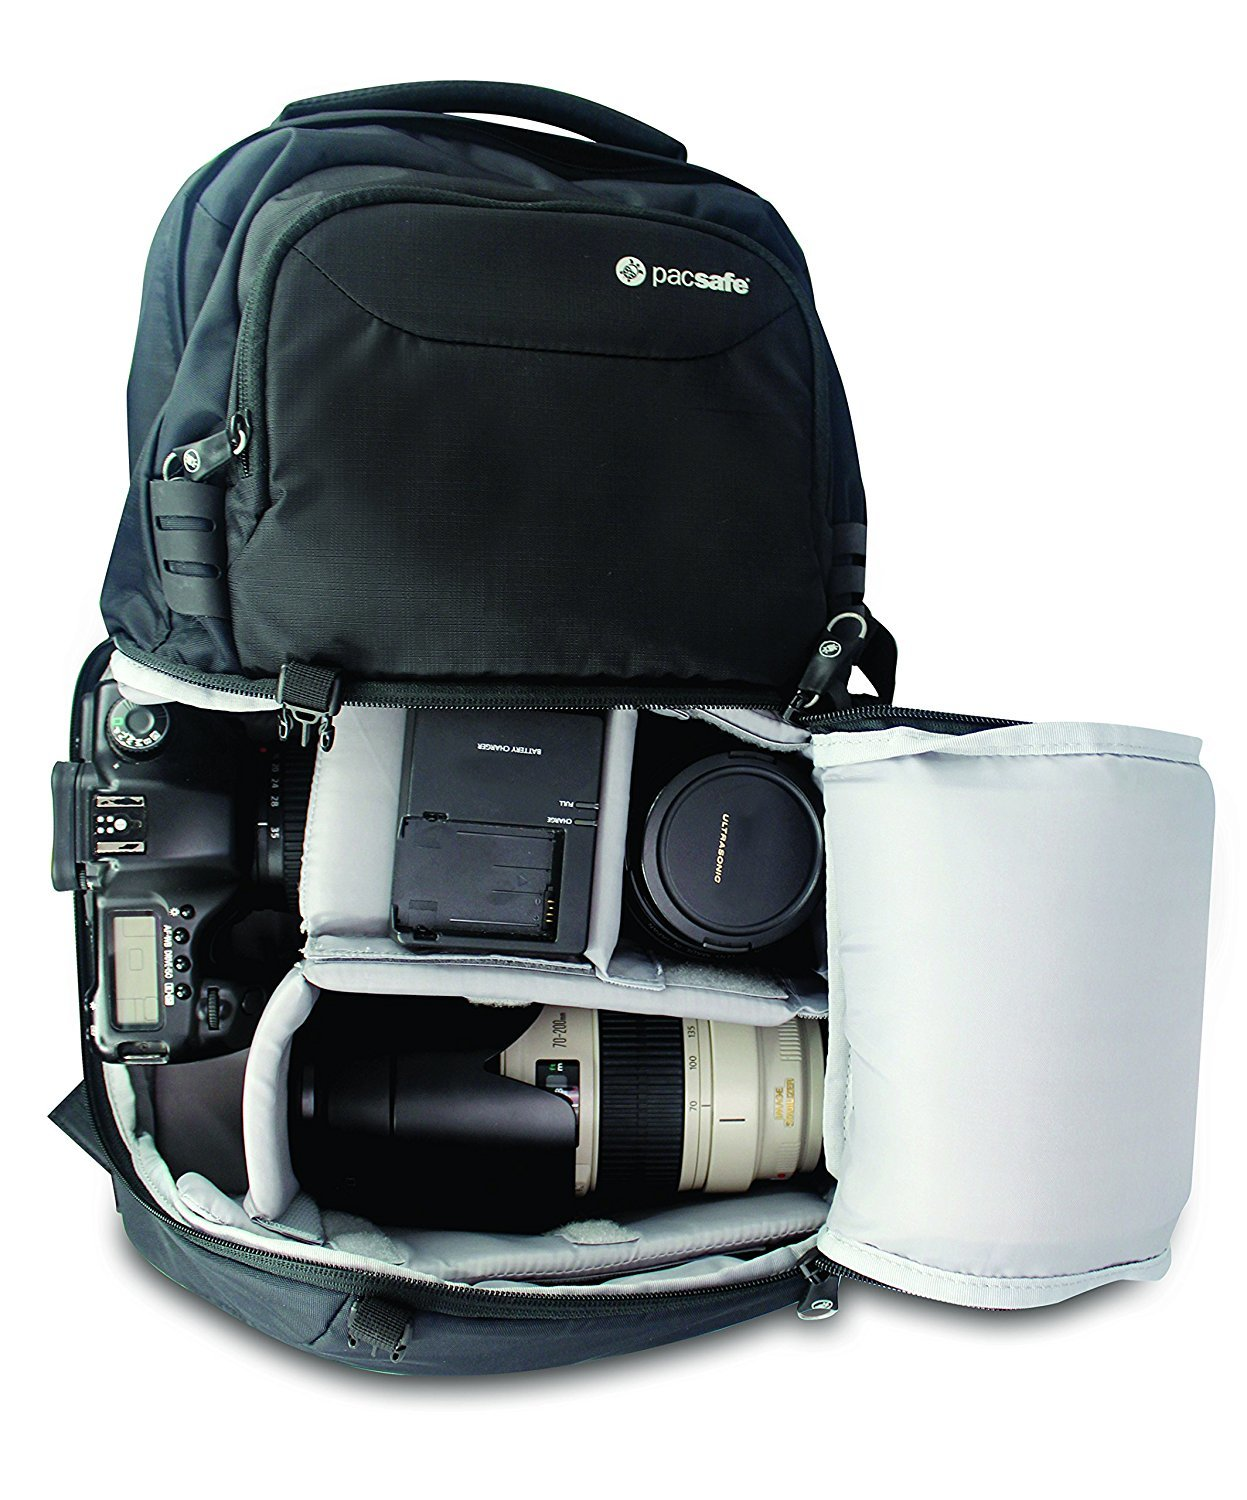 Pacsafe Camsafe camera backpack